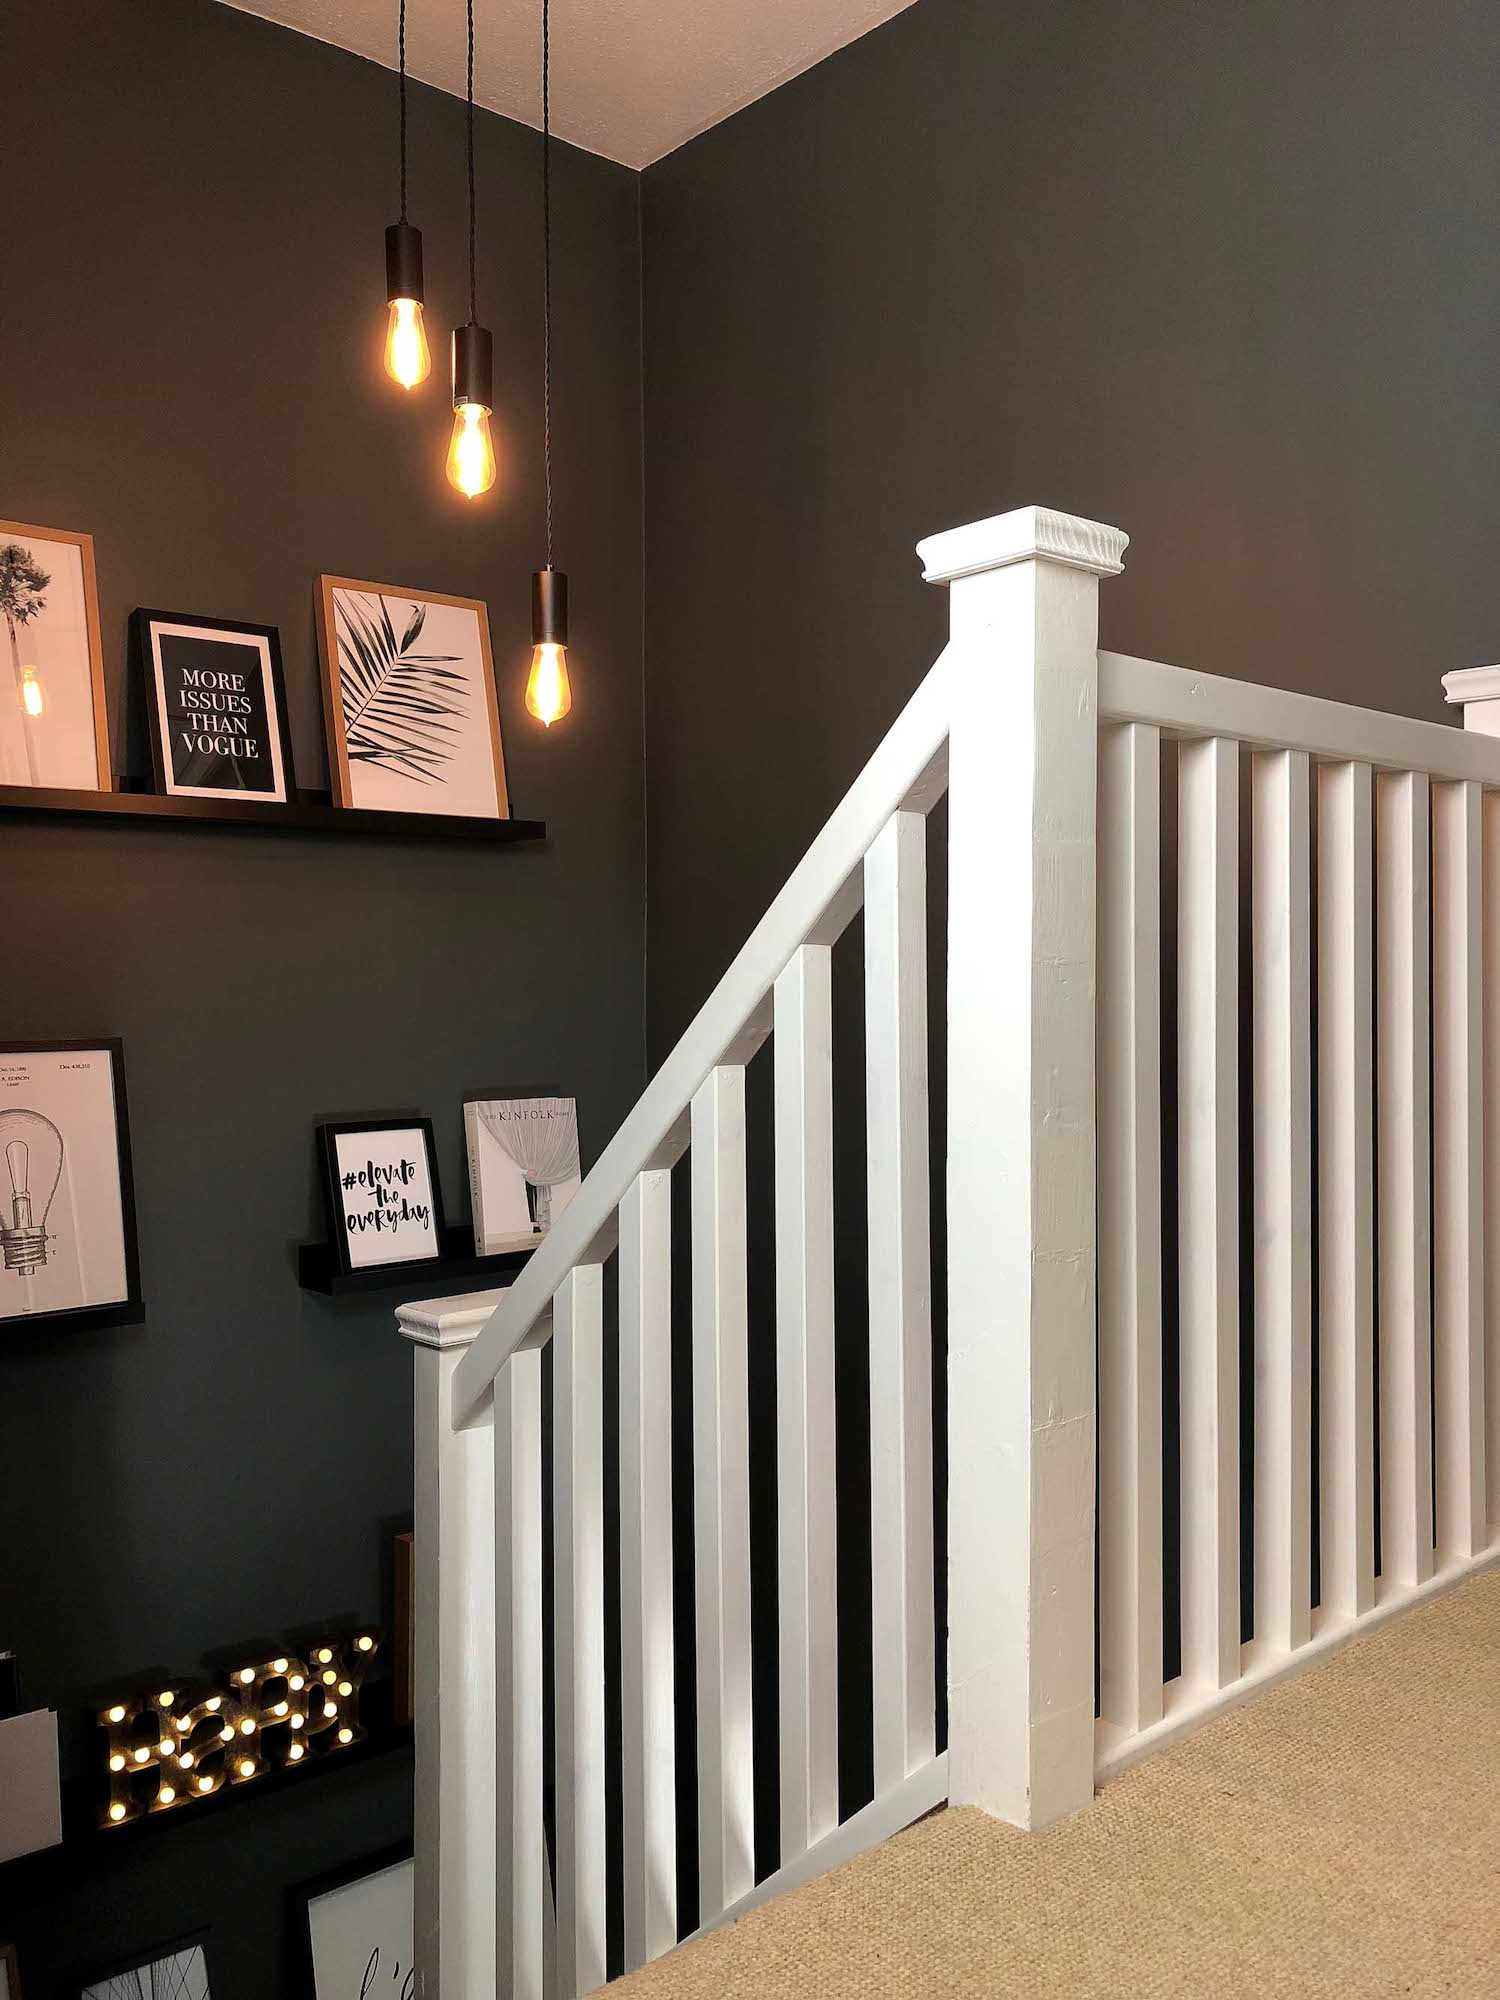 17 white wooden bannisters.jpg